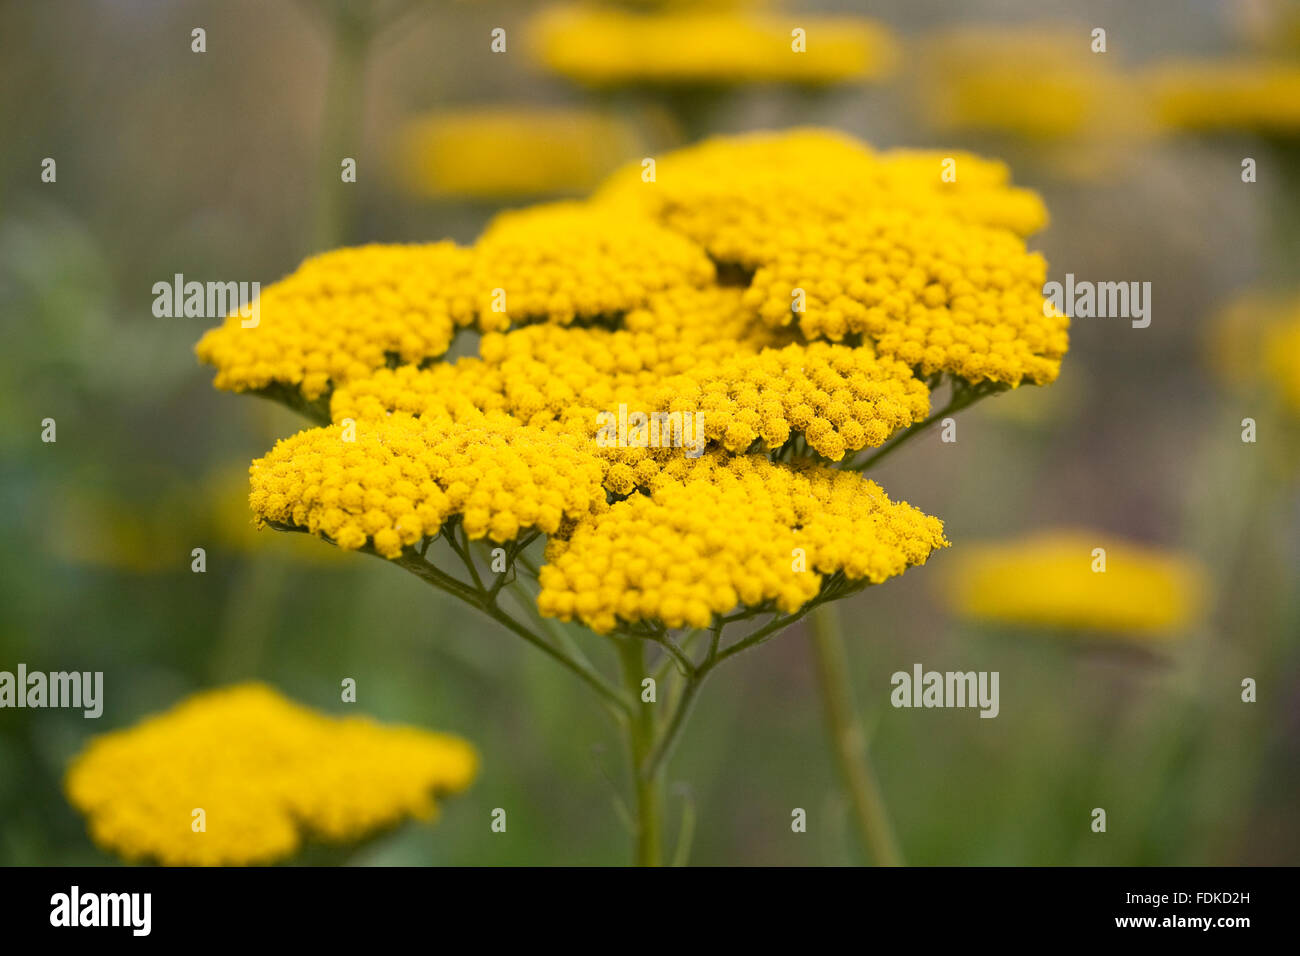 Achillea filipendulina 'Coronation Gold' flowers. - Stock Image